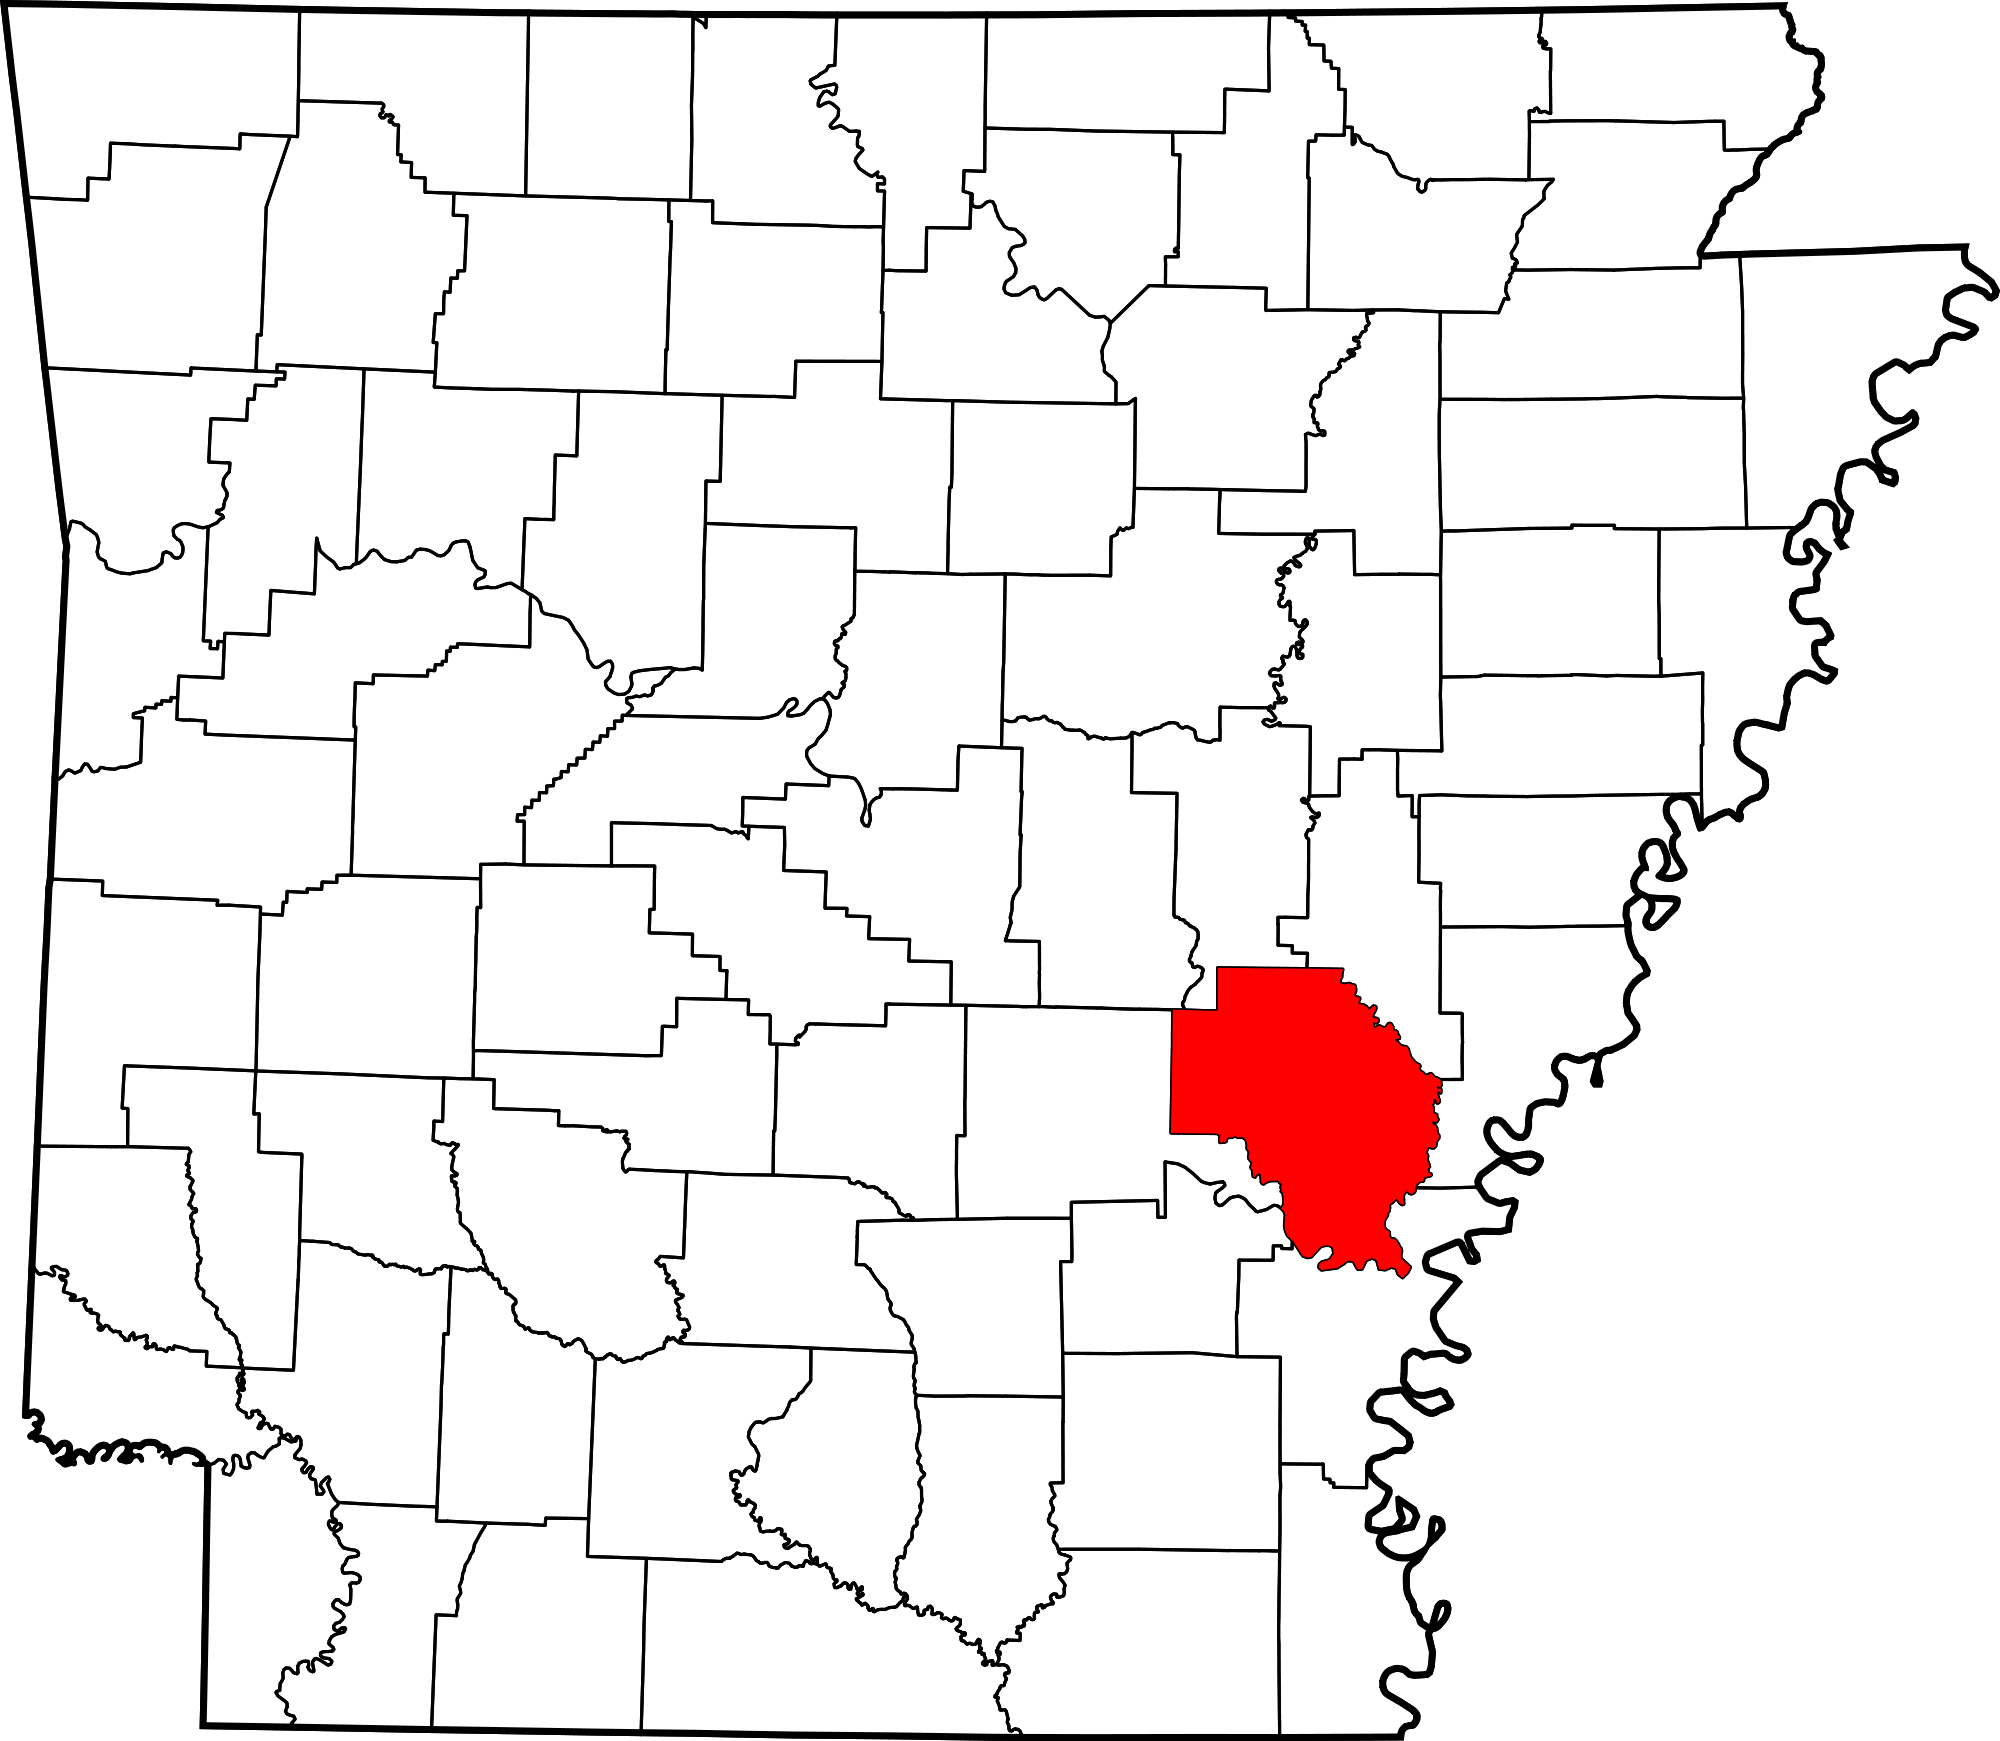 Arkansas svg map. File of highlighting county